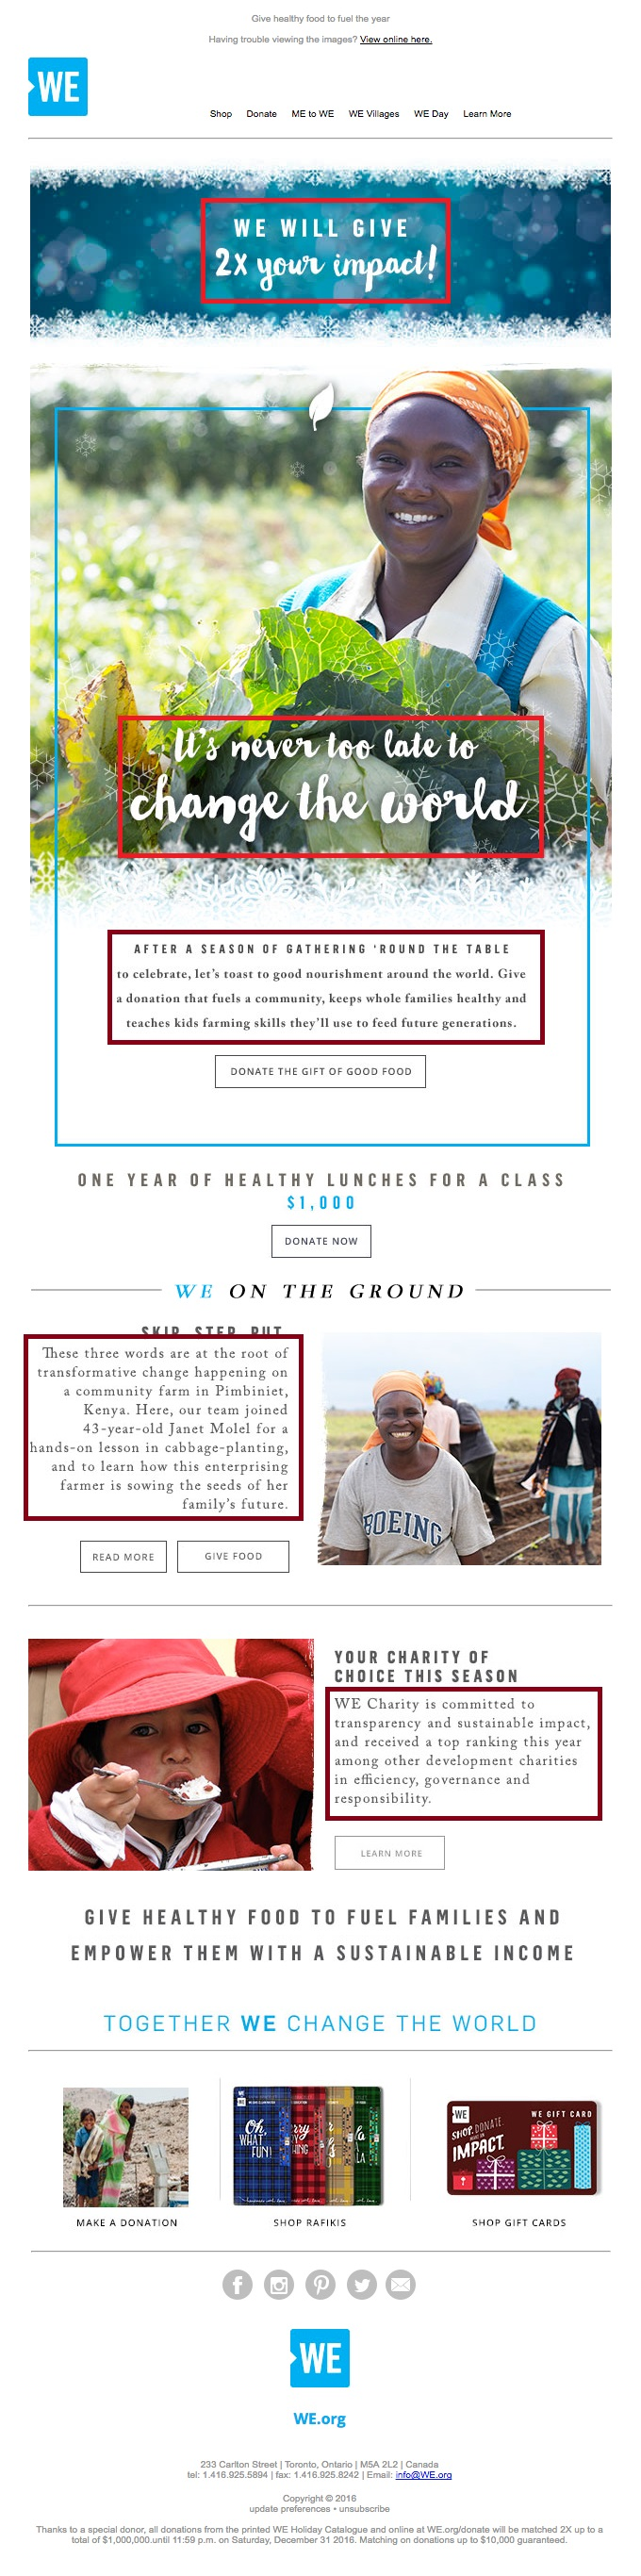 This email from WE uses a good amount of visual elements: Using too many visual elements can be a classic nonprofit email marketing mistake